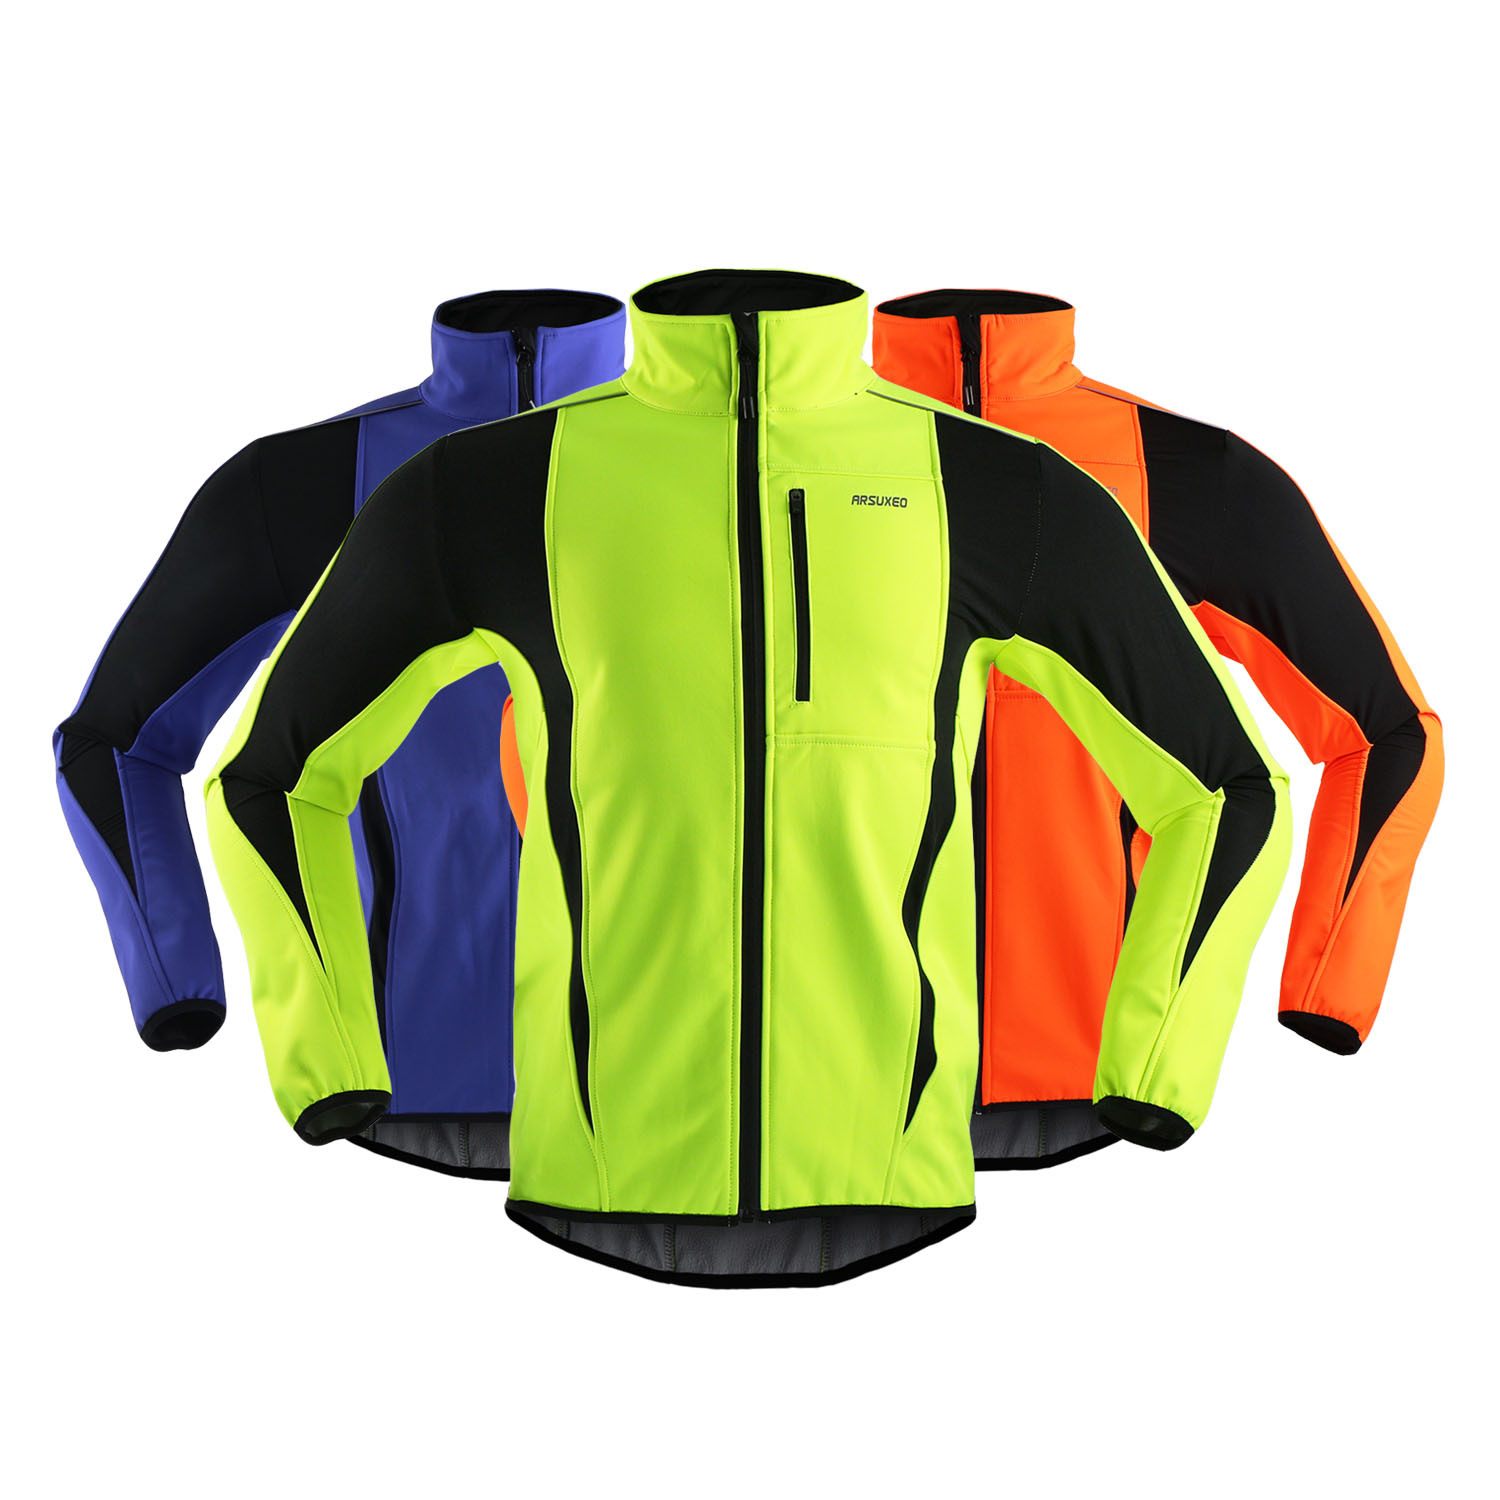 Arsuxeo Winter Windbreaker Waterproof Thermal Fleece Men's Cycling Jacket Reflective Coat MTB Outdoor Sports Bike Jacket Clothes 2015 arsuxeo mtb 1202